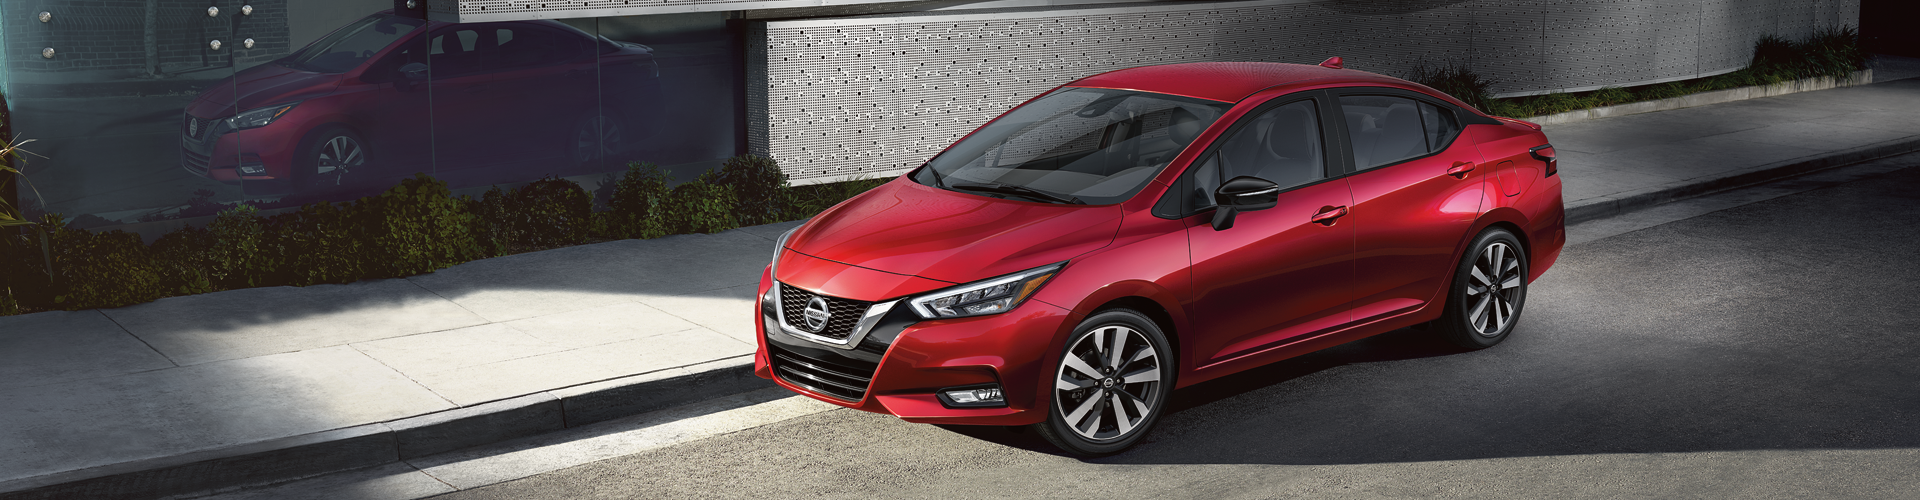 2020 Nissan Versa Red Sedan on City Street